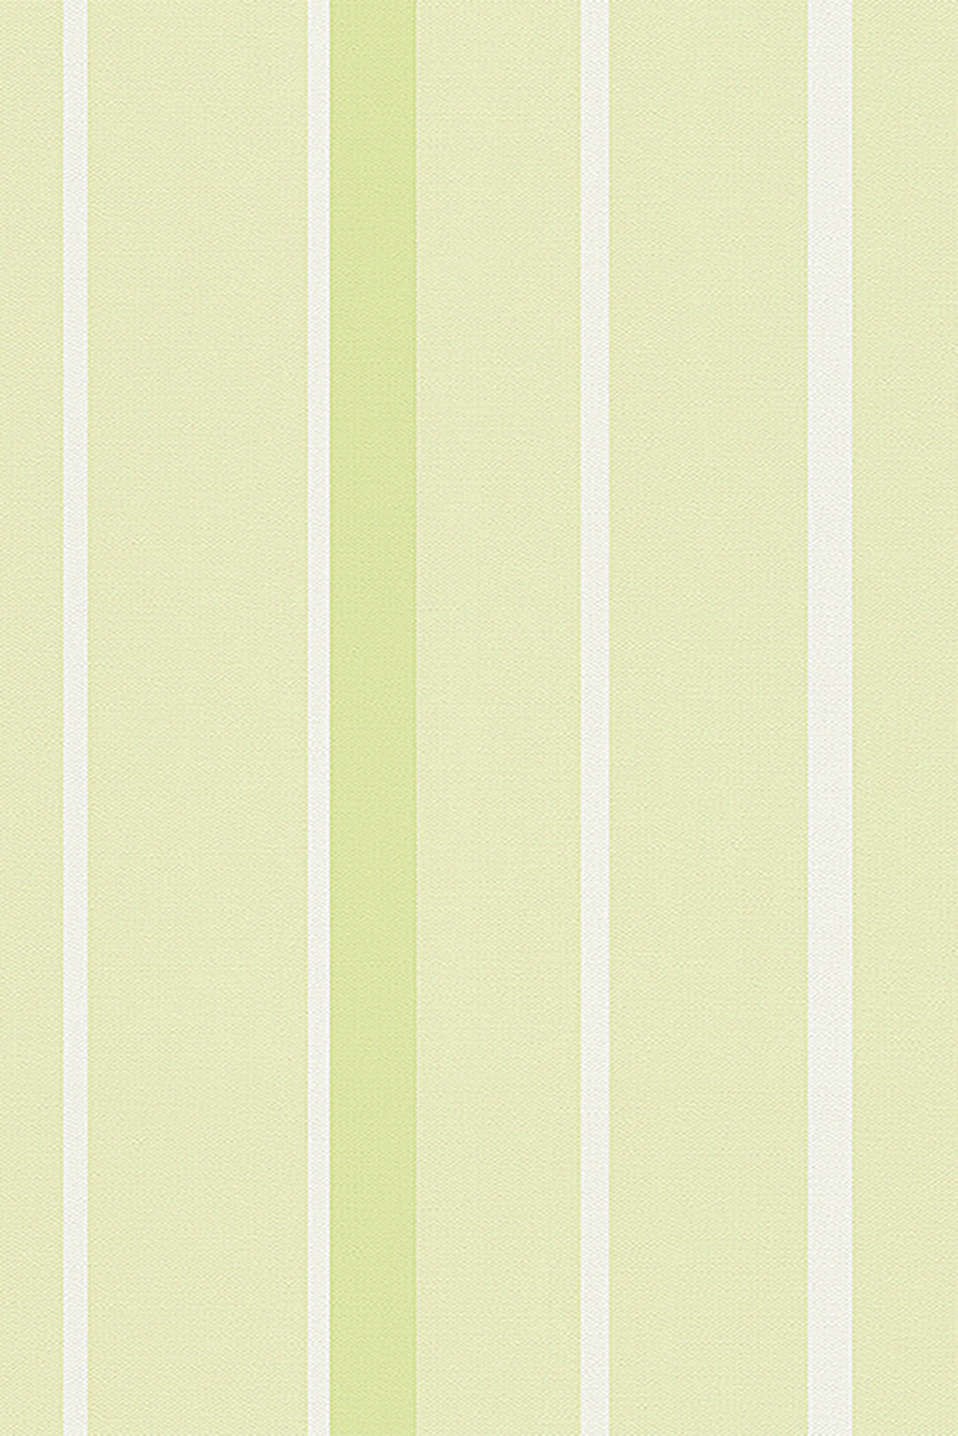 Esprit - Papel pintado infantil Jungle Striped